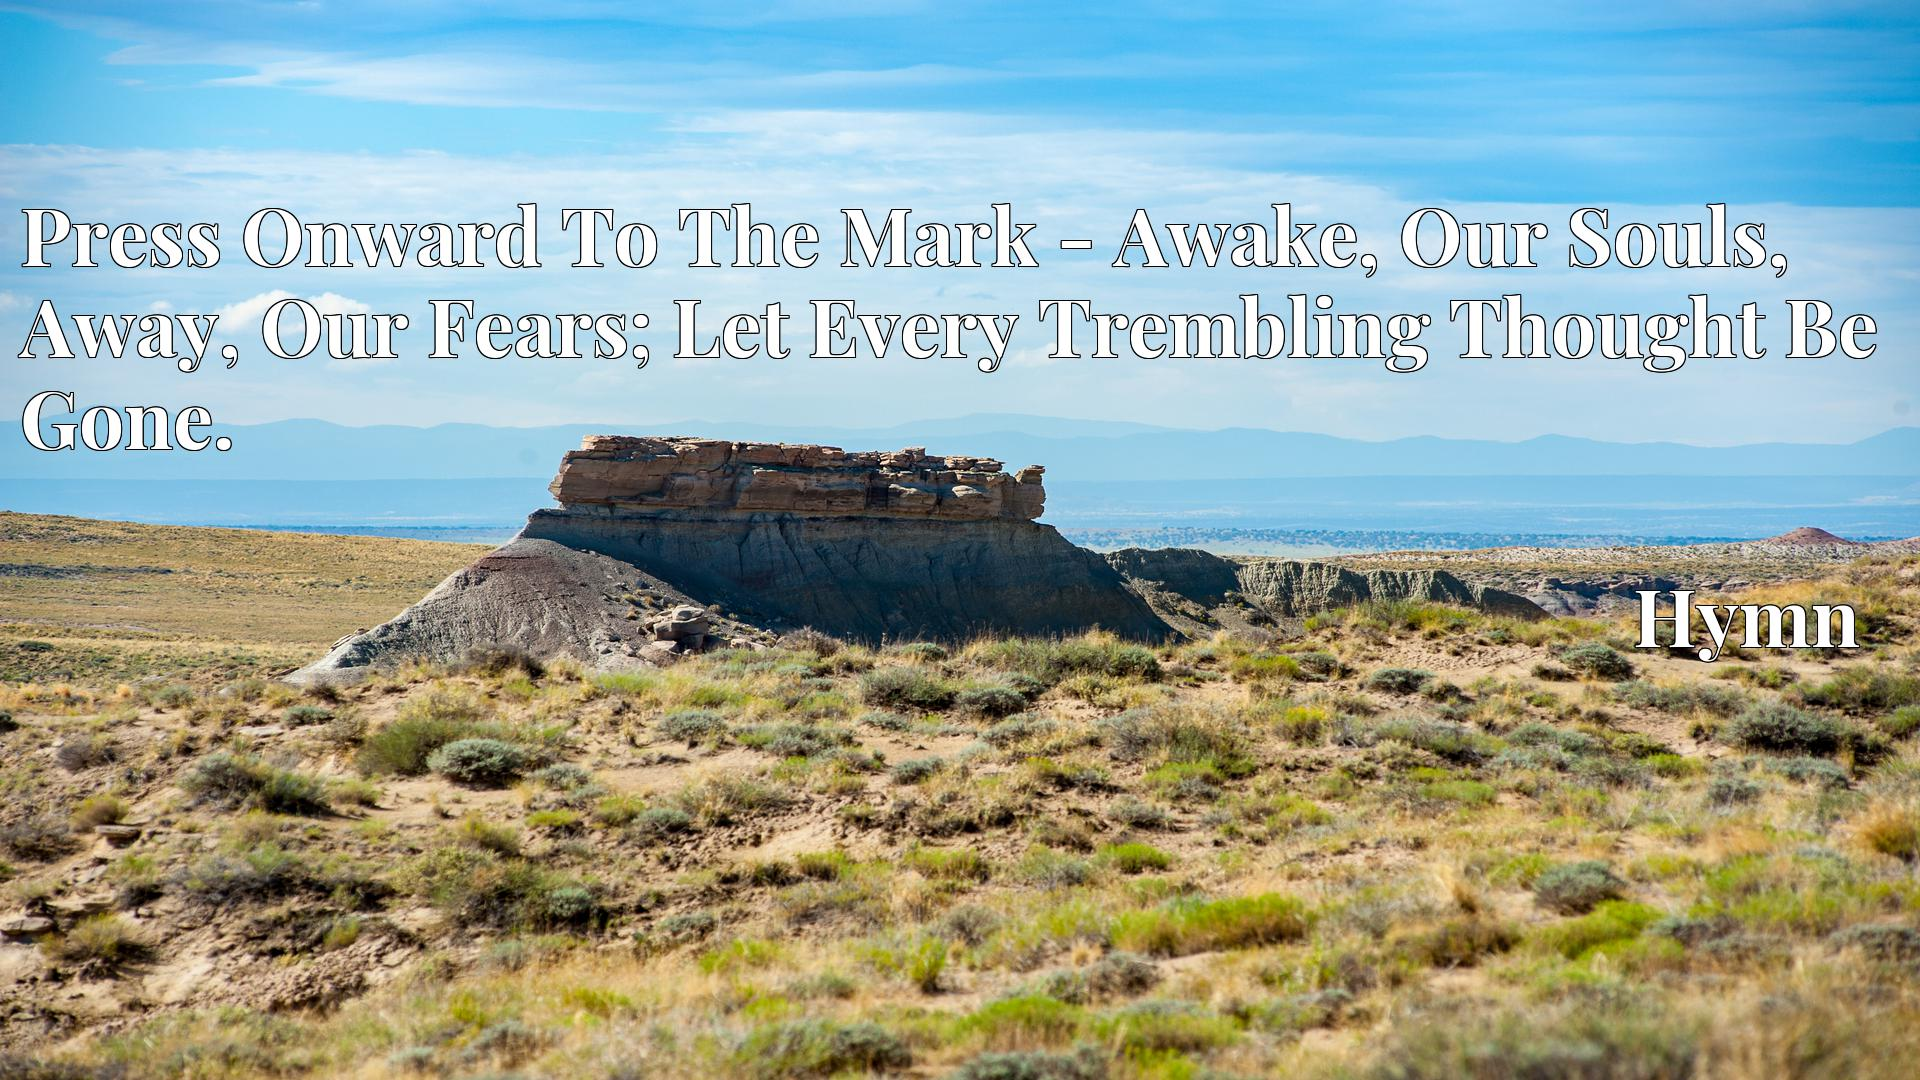 Press Onward To The Mark - Awake, Our Souls, Away, Our Fears; Let Every Trembling Thought Be Gone. - Hymn